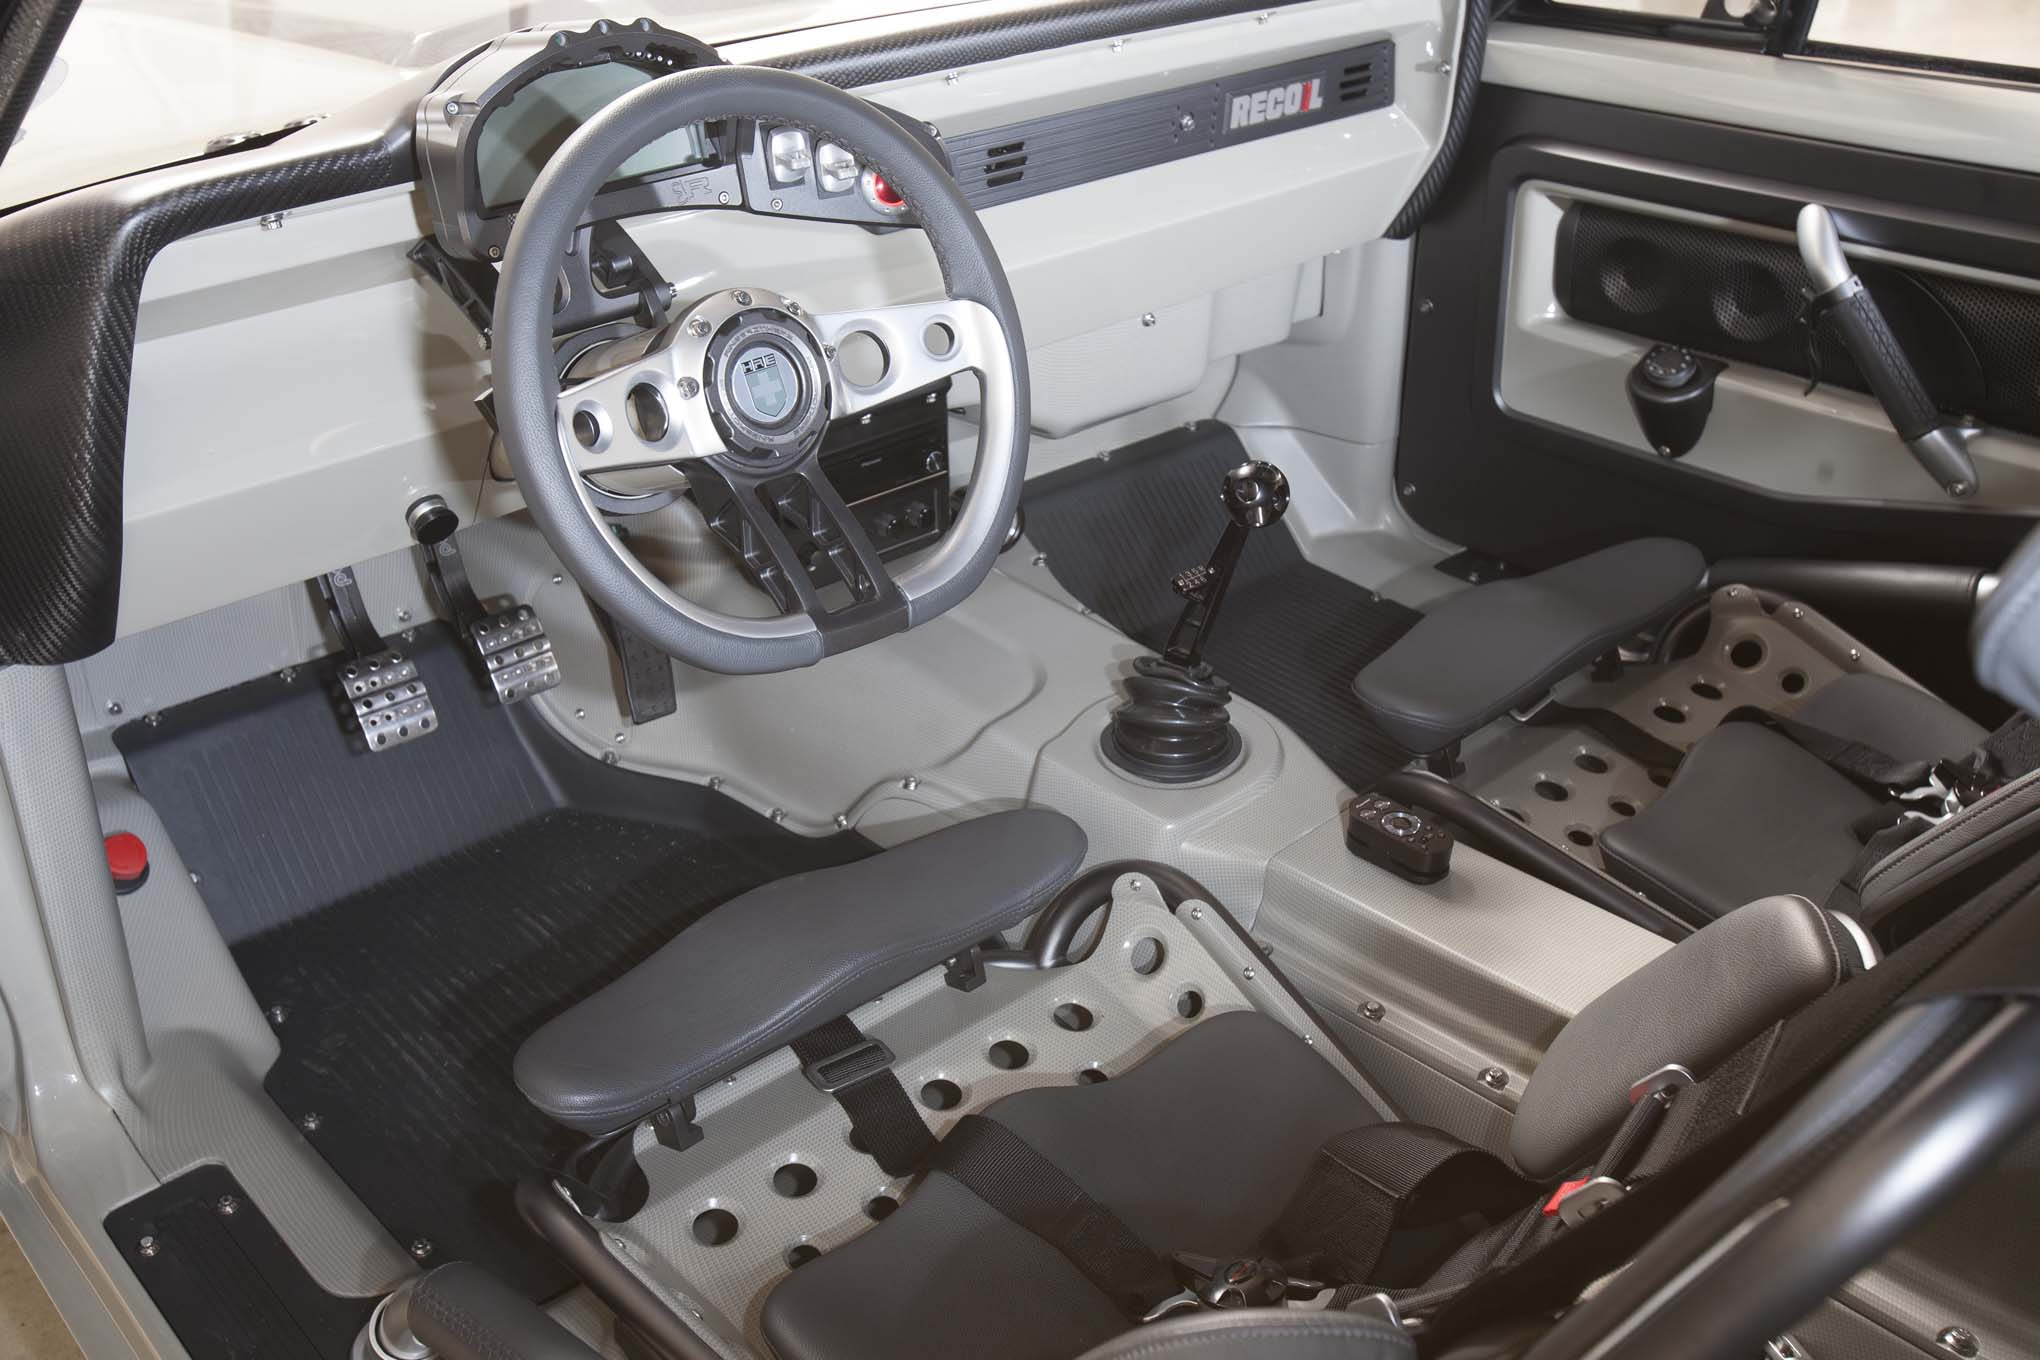 The interior is equal parts sci-fi and race car with buttons and distractions kept to a minimum. The billet-aluminum window switches are easy to miss, but the tiny Vintage Air A/C controls mounted in the center console are clearly labeled.